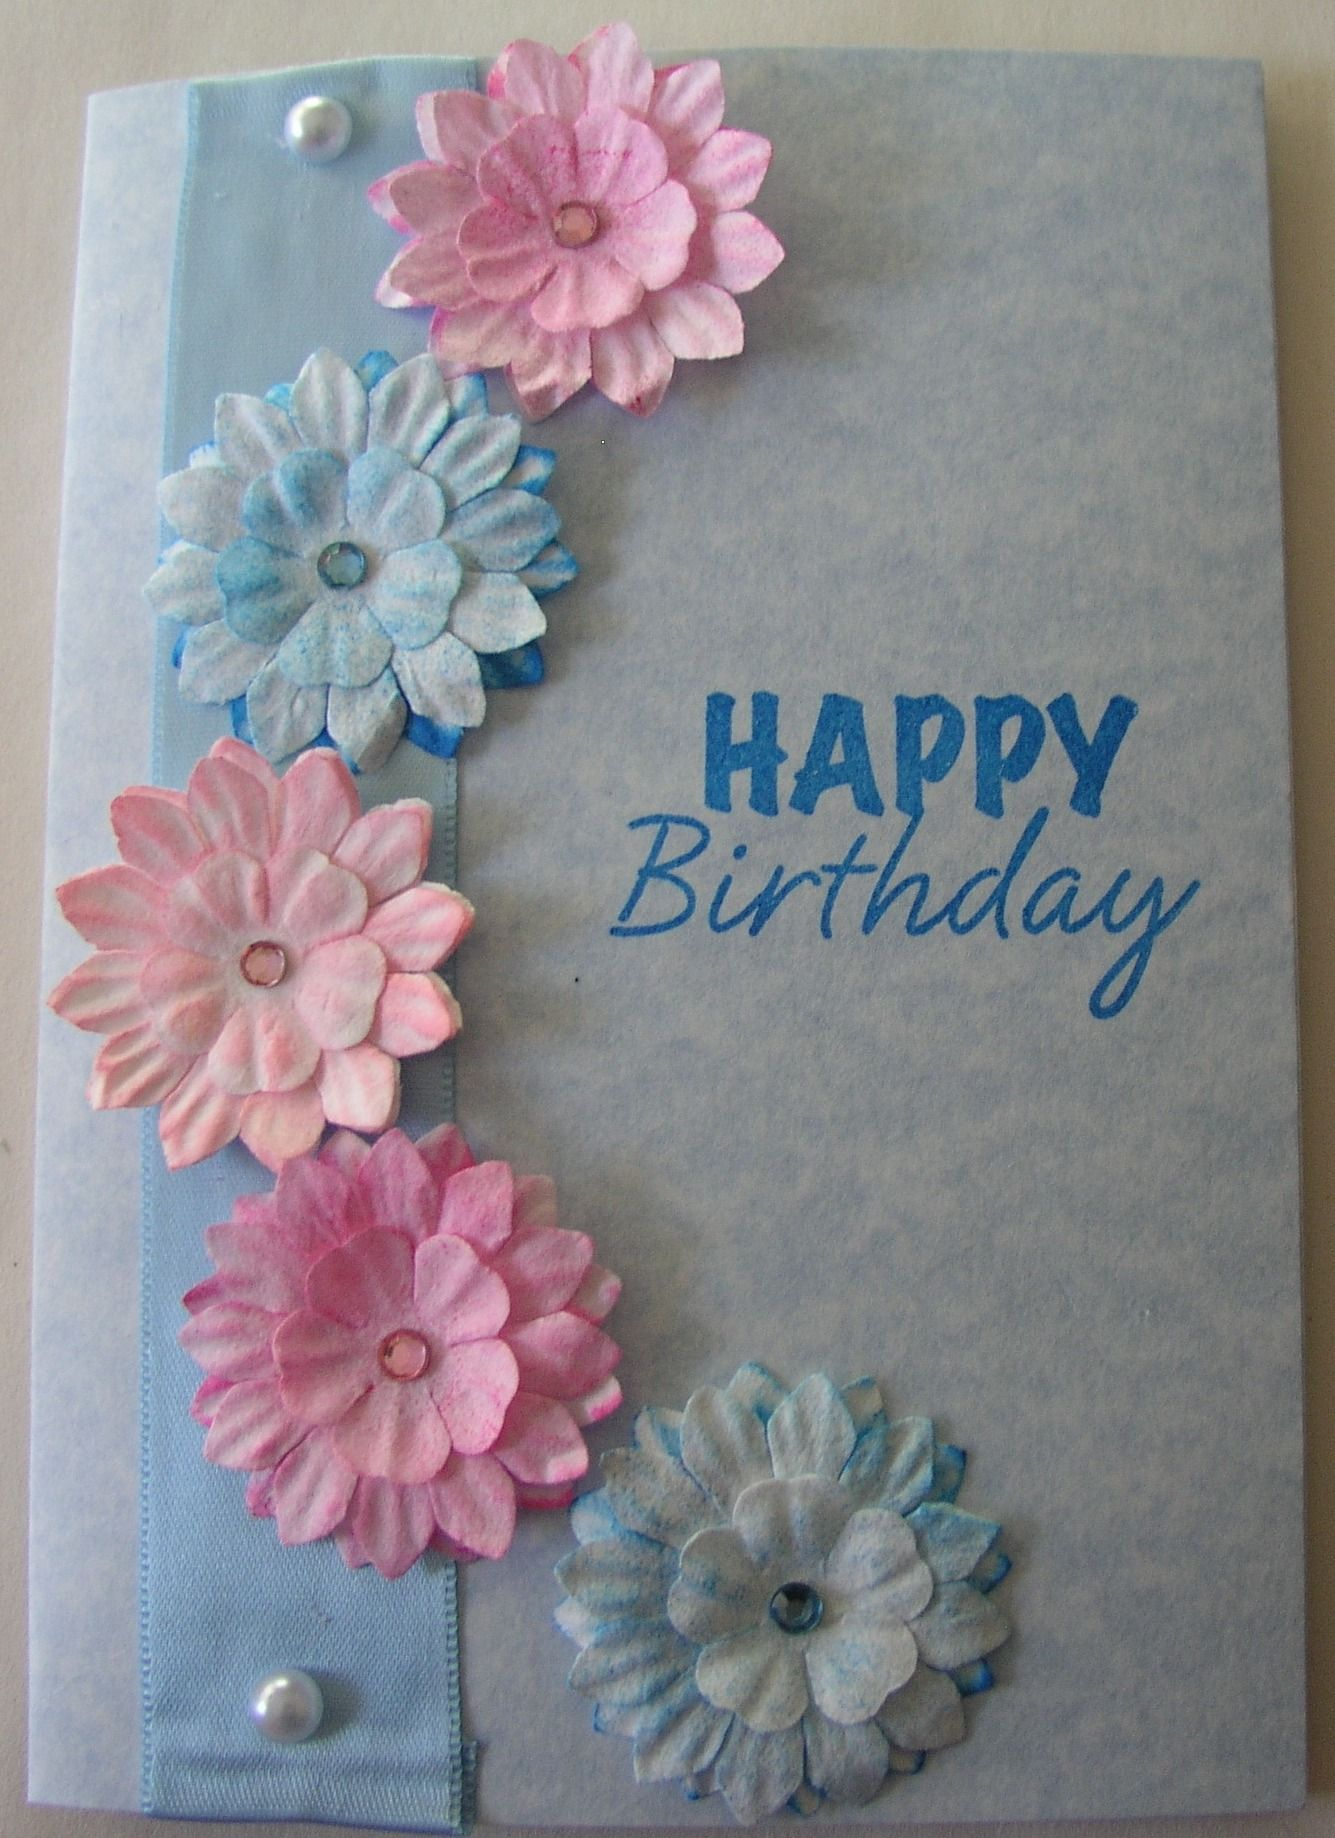 homemade cards Making your own greeting cards can be